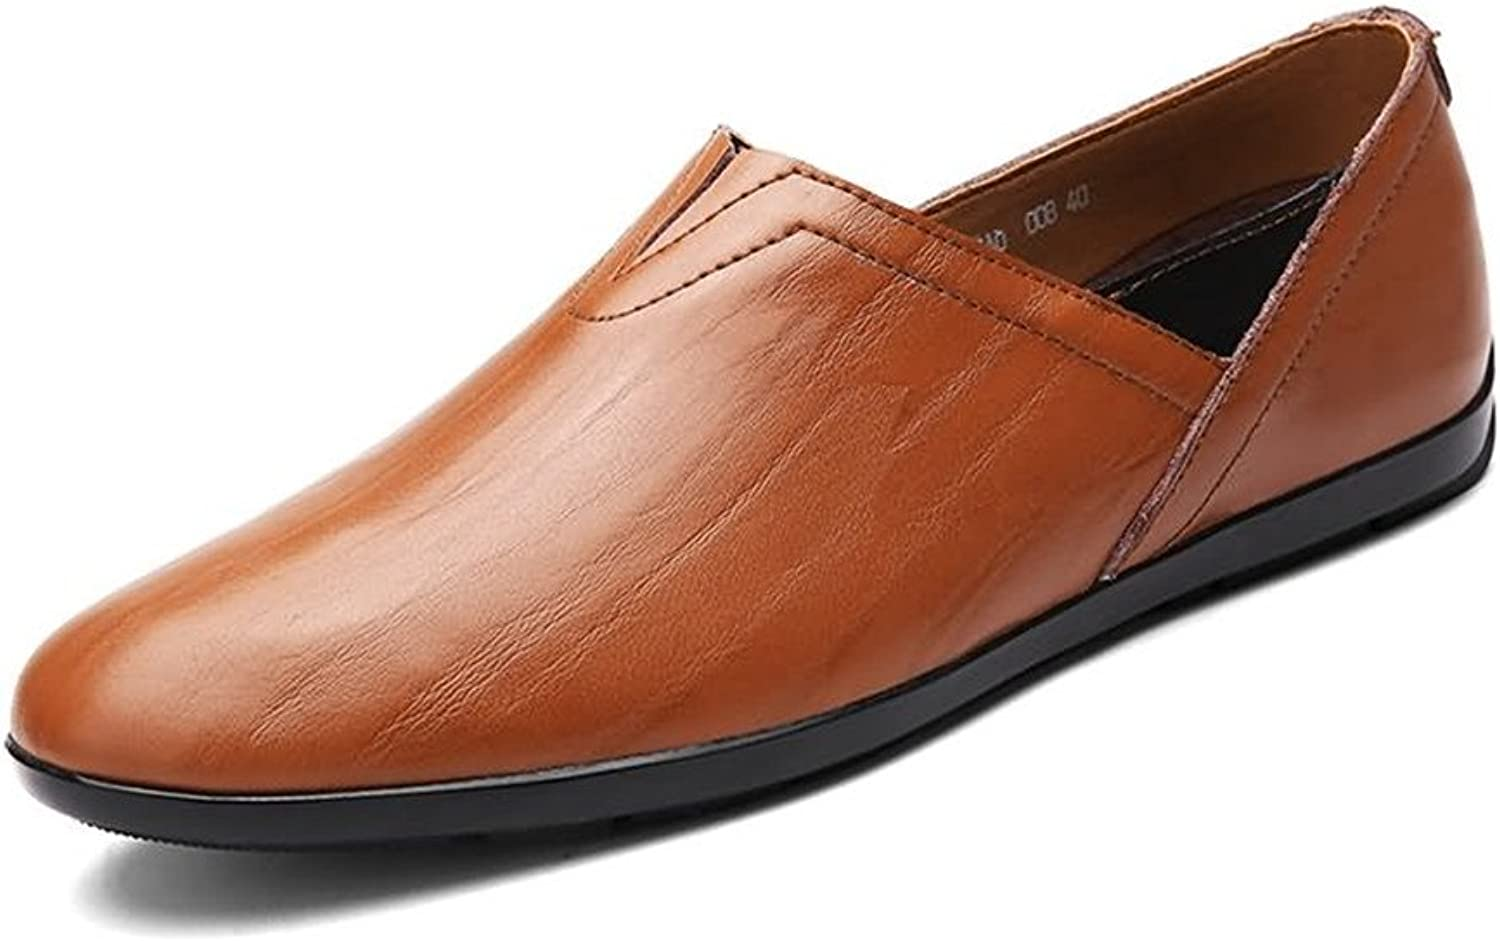 2018 new Men's Loafers PU Leather Slip on Fashionable Moccasins Casual shoes (color   Red Brown, Size   7 UK)